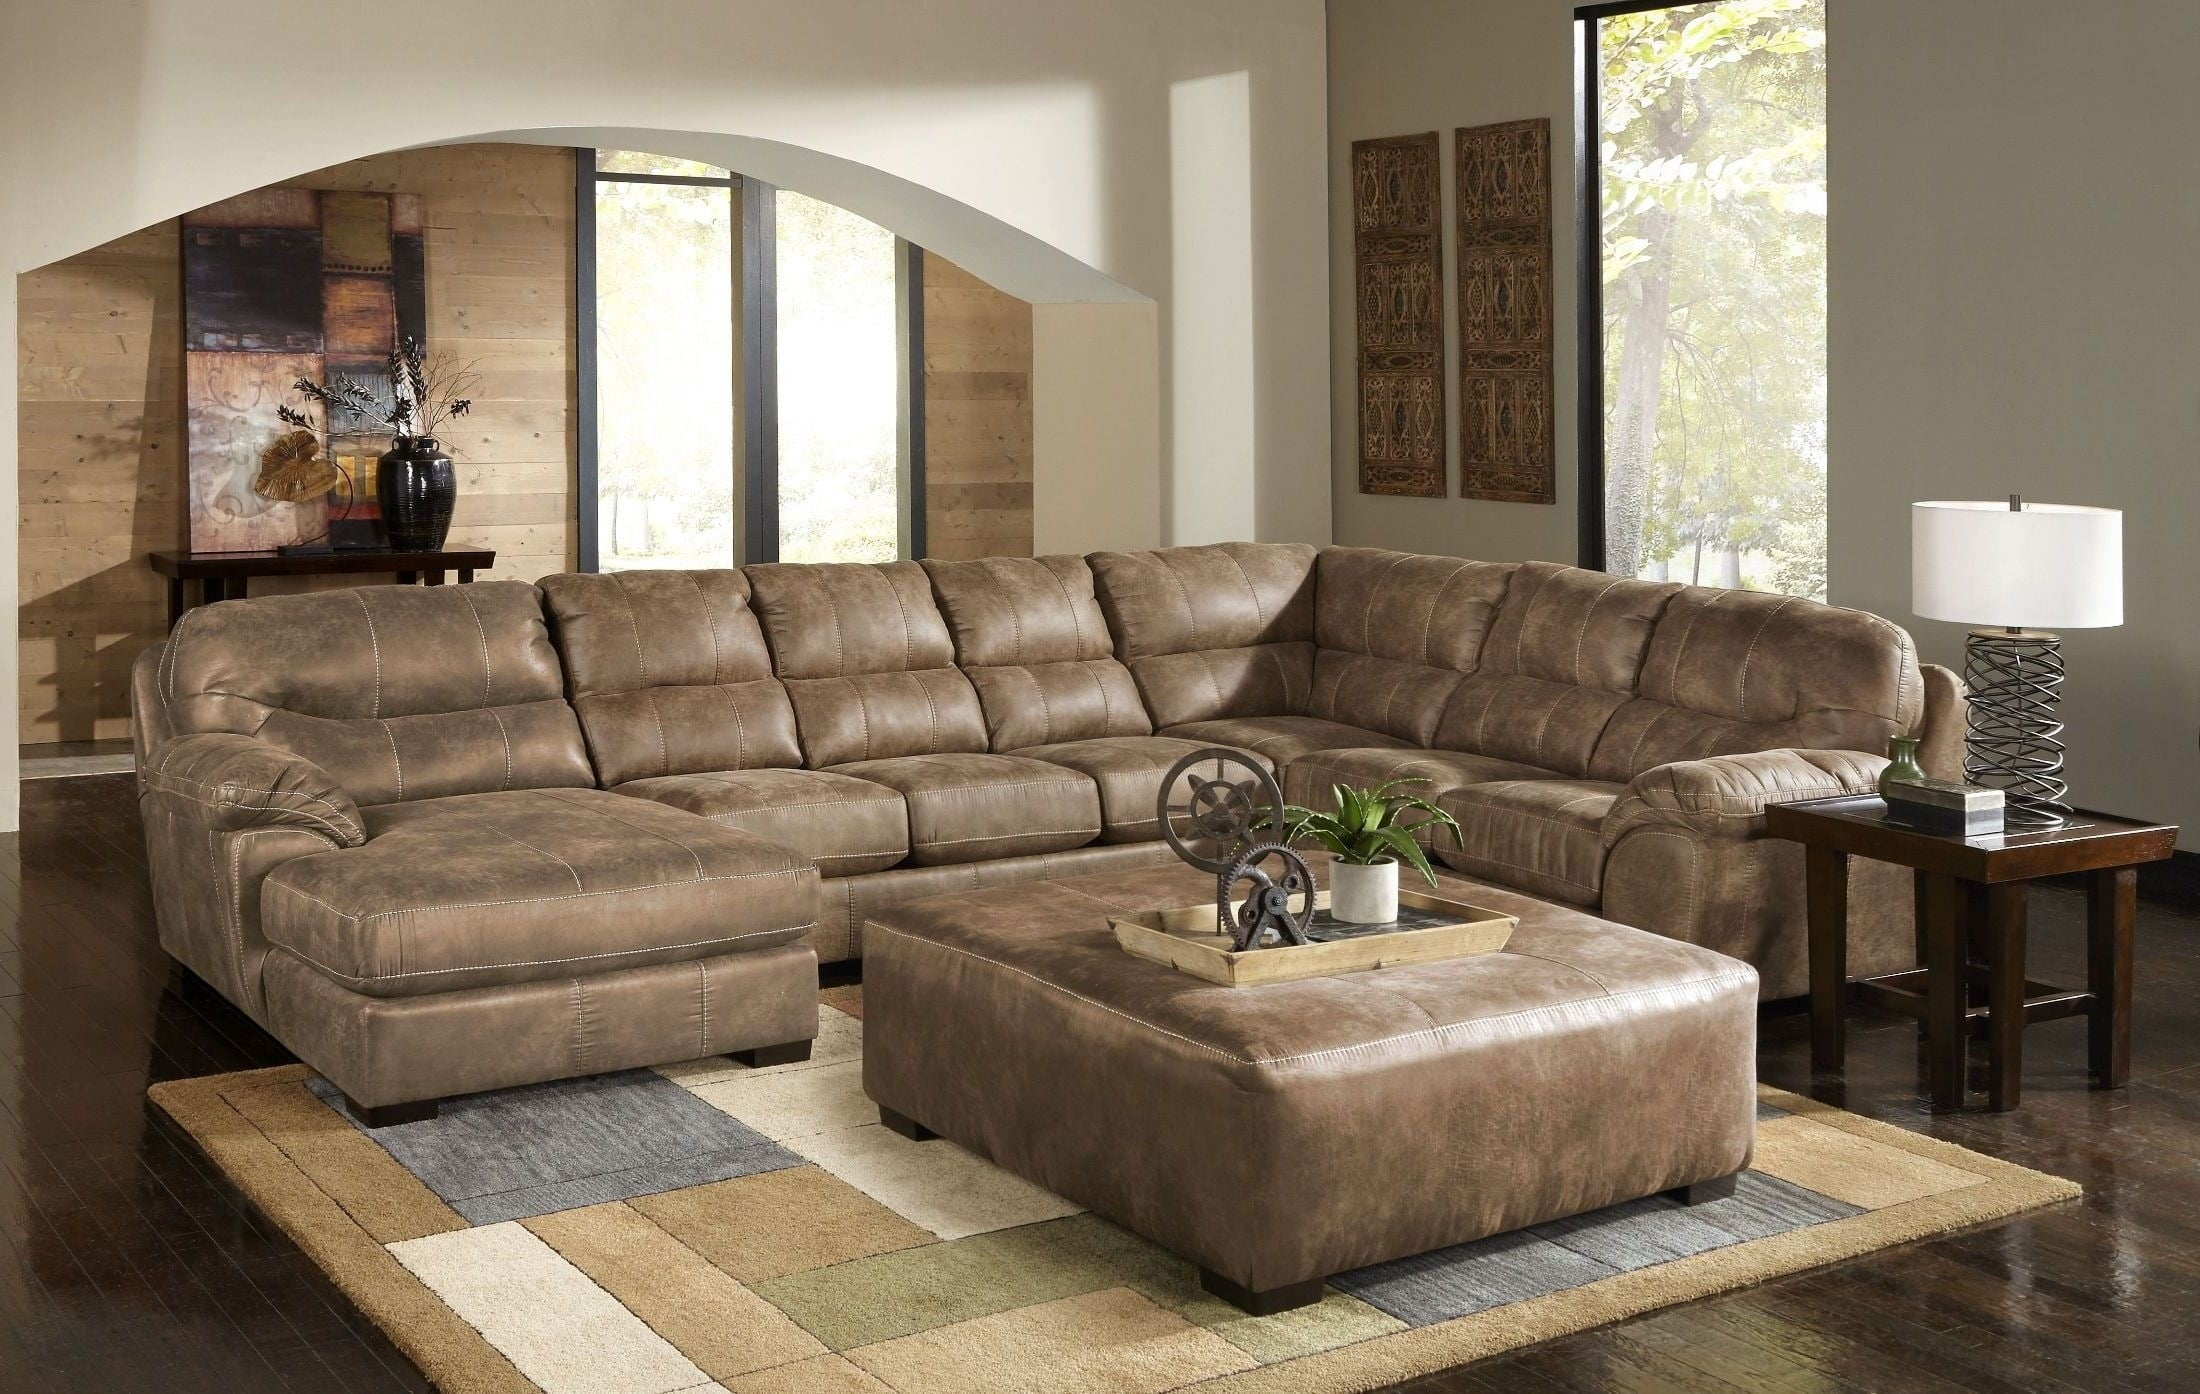 Grant Silt Laf Chaise Sectional, 4453-75-122749302749, Jackson inside Avery 2 Piece Sectionals With Laf Armless Chaise